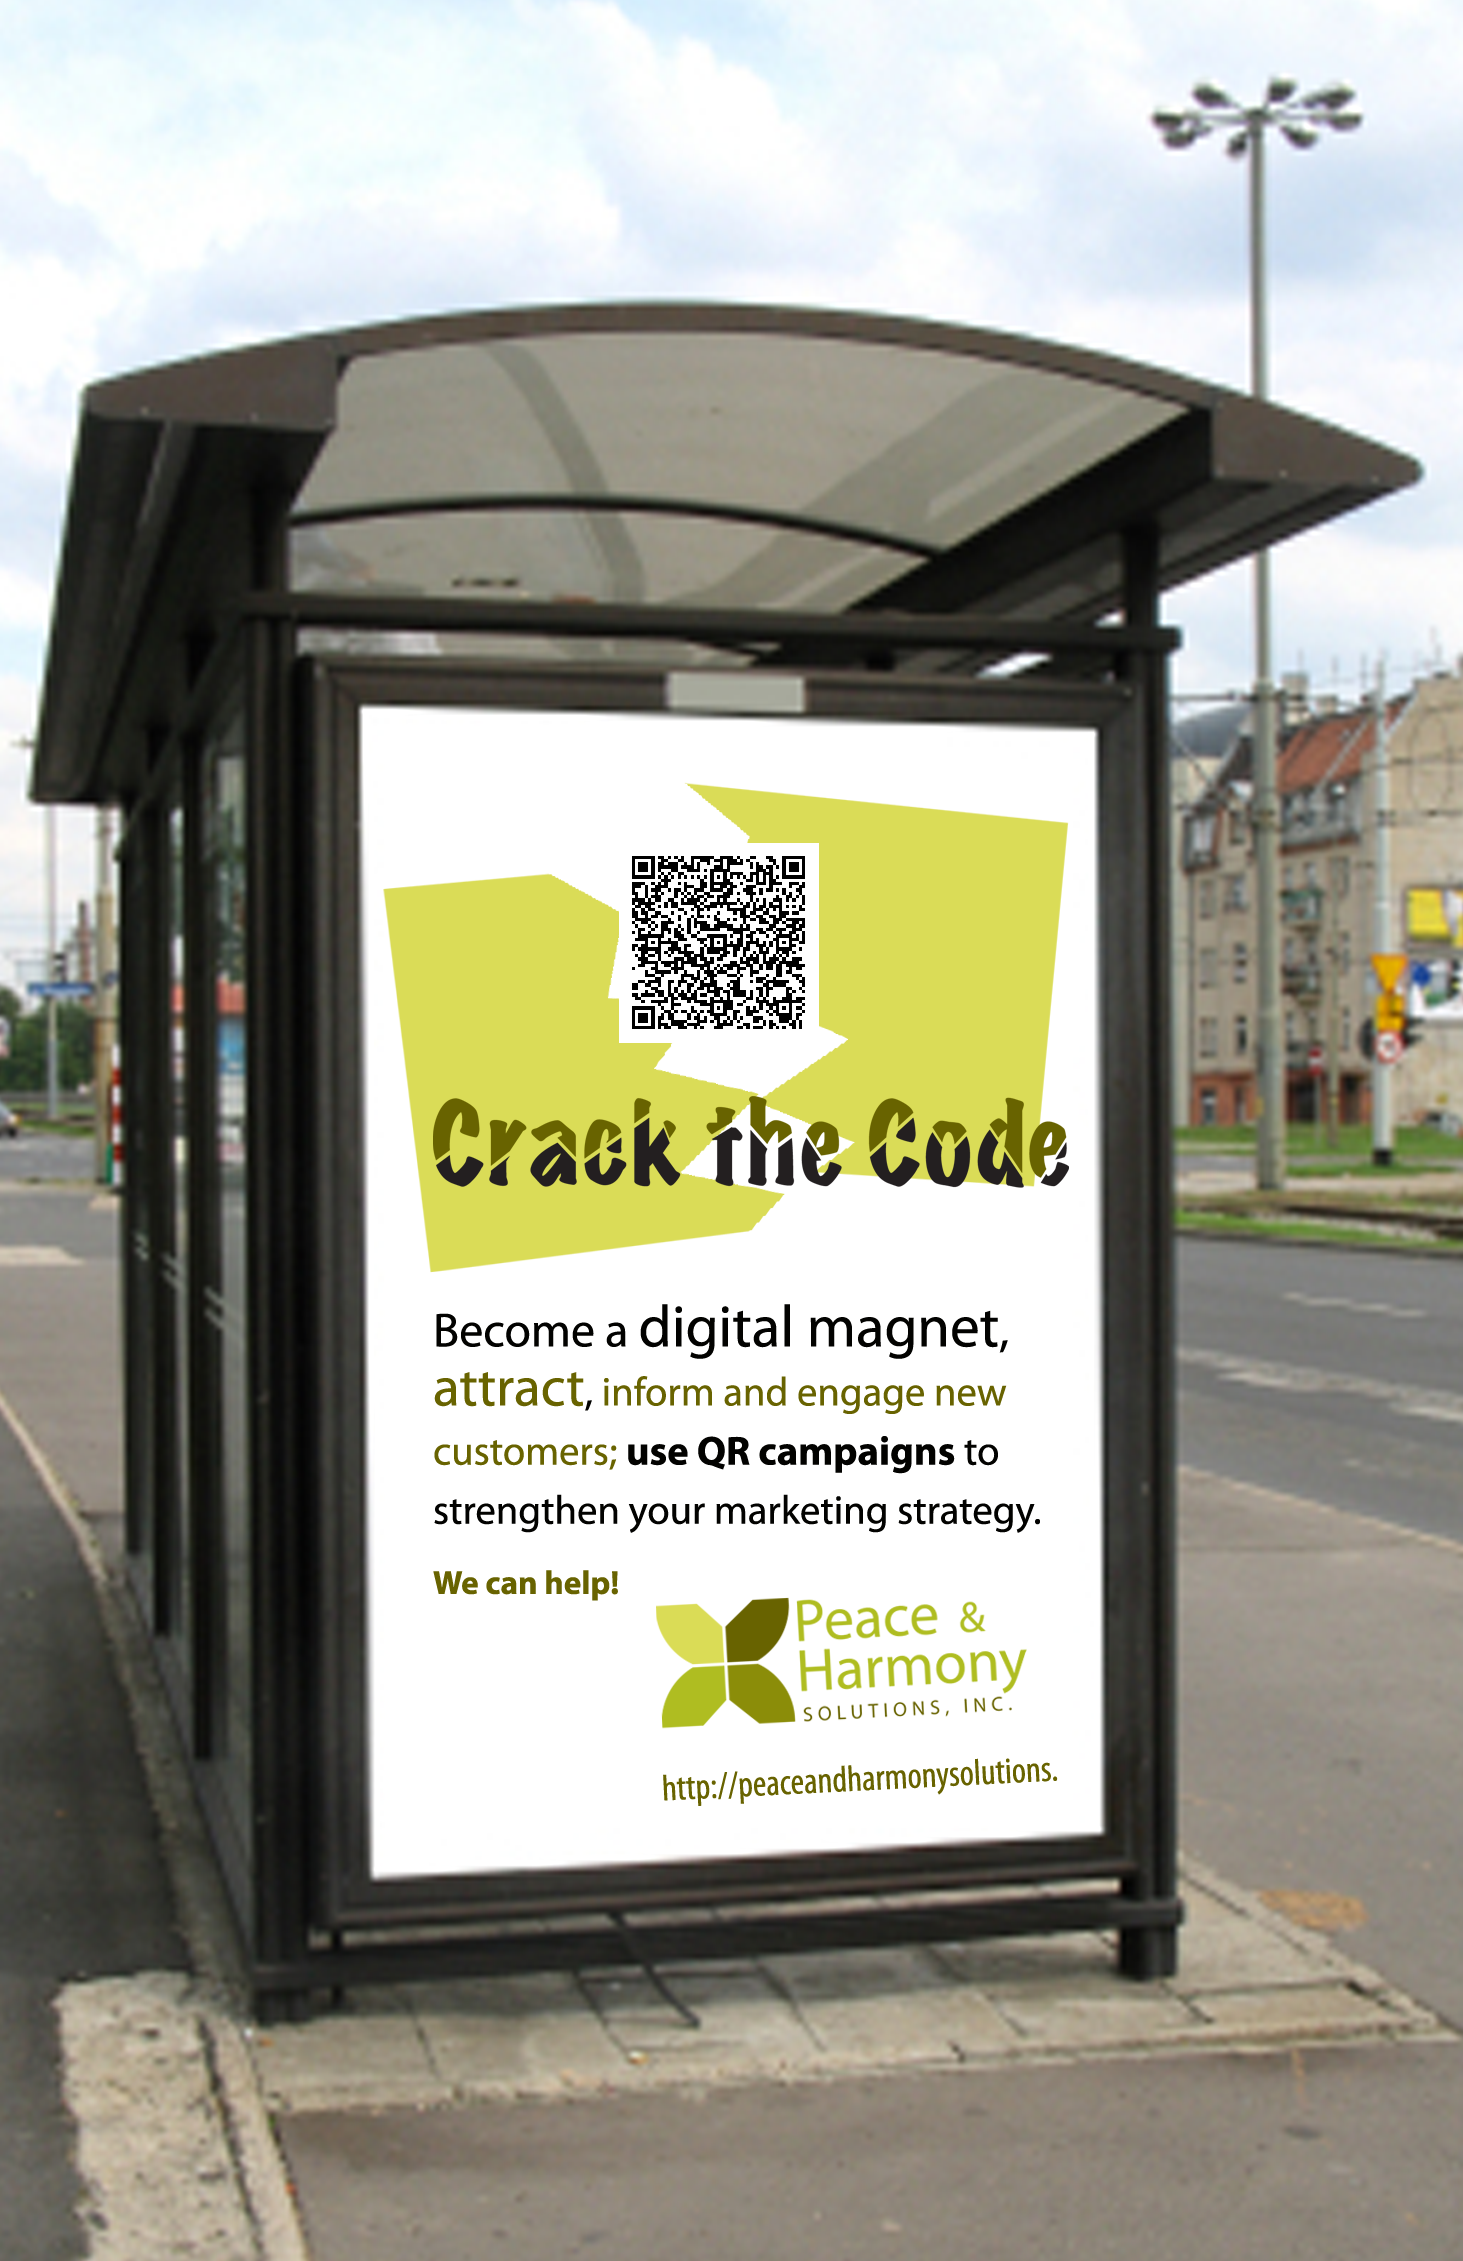 Crack the Code image - Peace & Harmony Solutions, Inc.